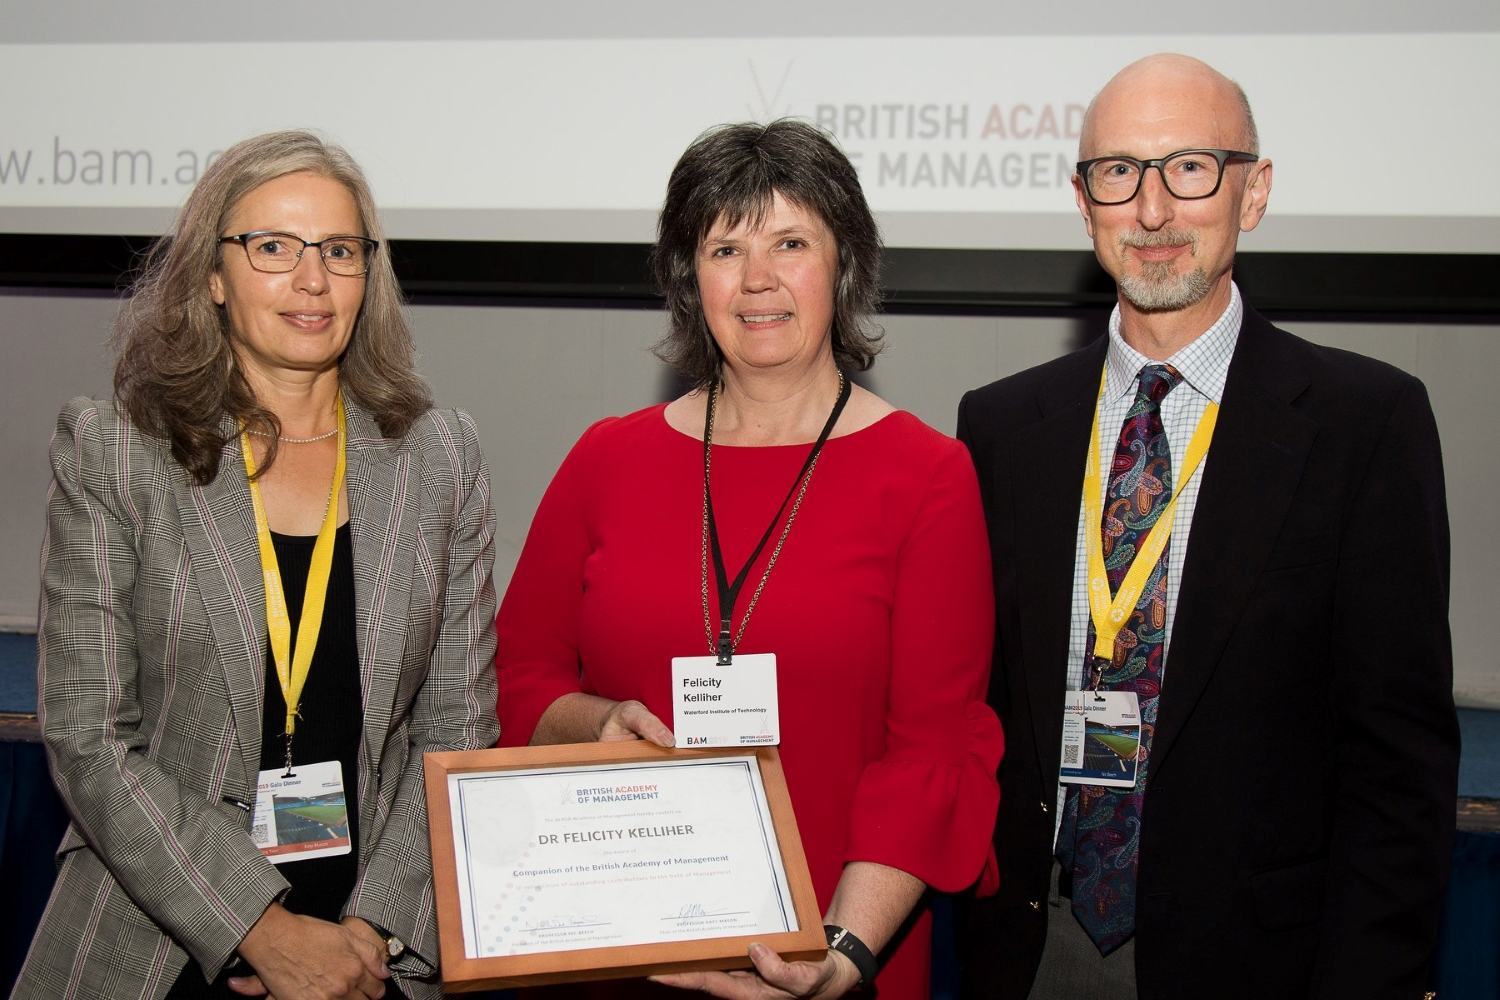 L to R: Prof Katy Mason, BAM Chair; Dr Felicity Kelliher, Prof Nic Beech, BAM President at the BAM Companion Award Presentation, Aston University Birmingham September 2019